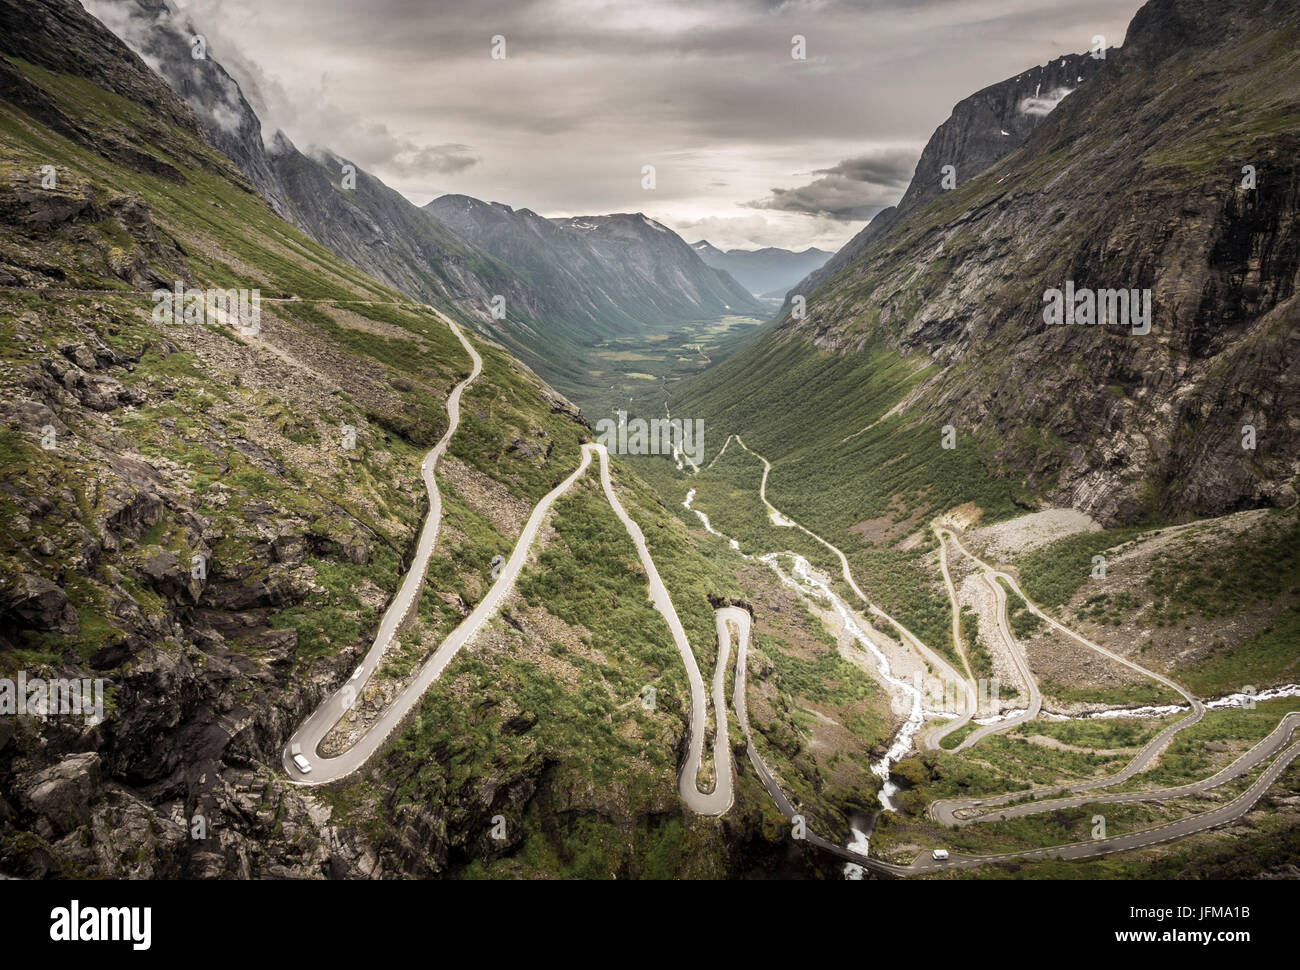 Trollstigen, More og Romsdal county, Norway - Stock Image